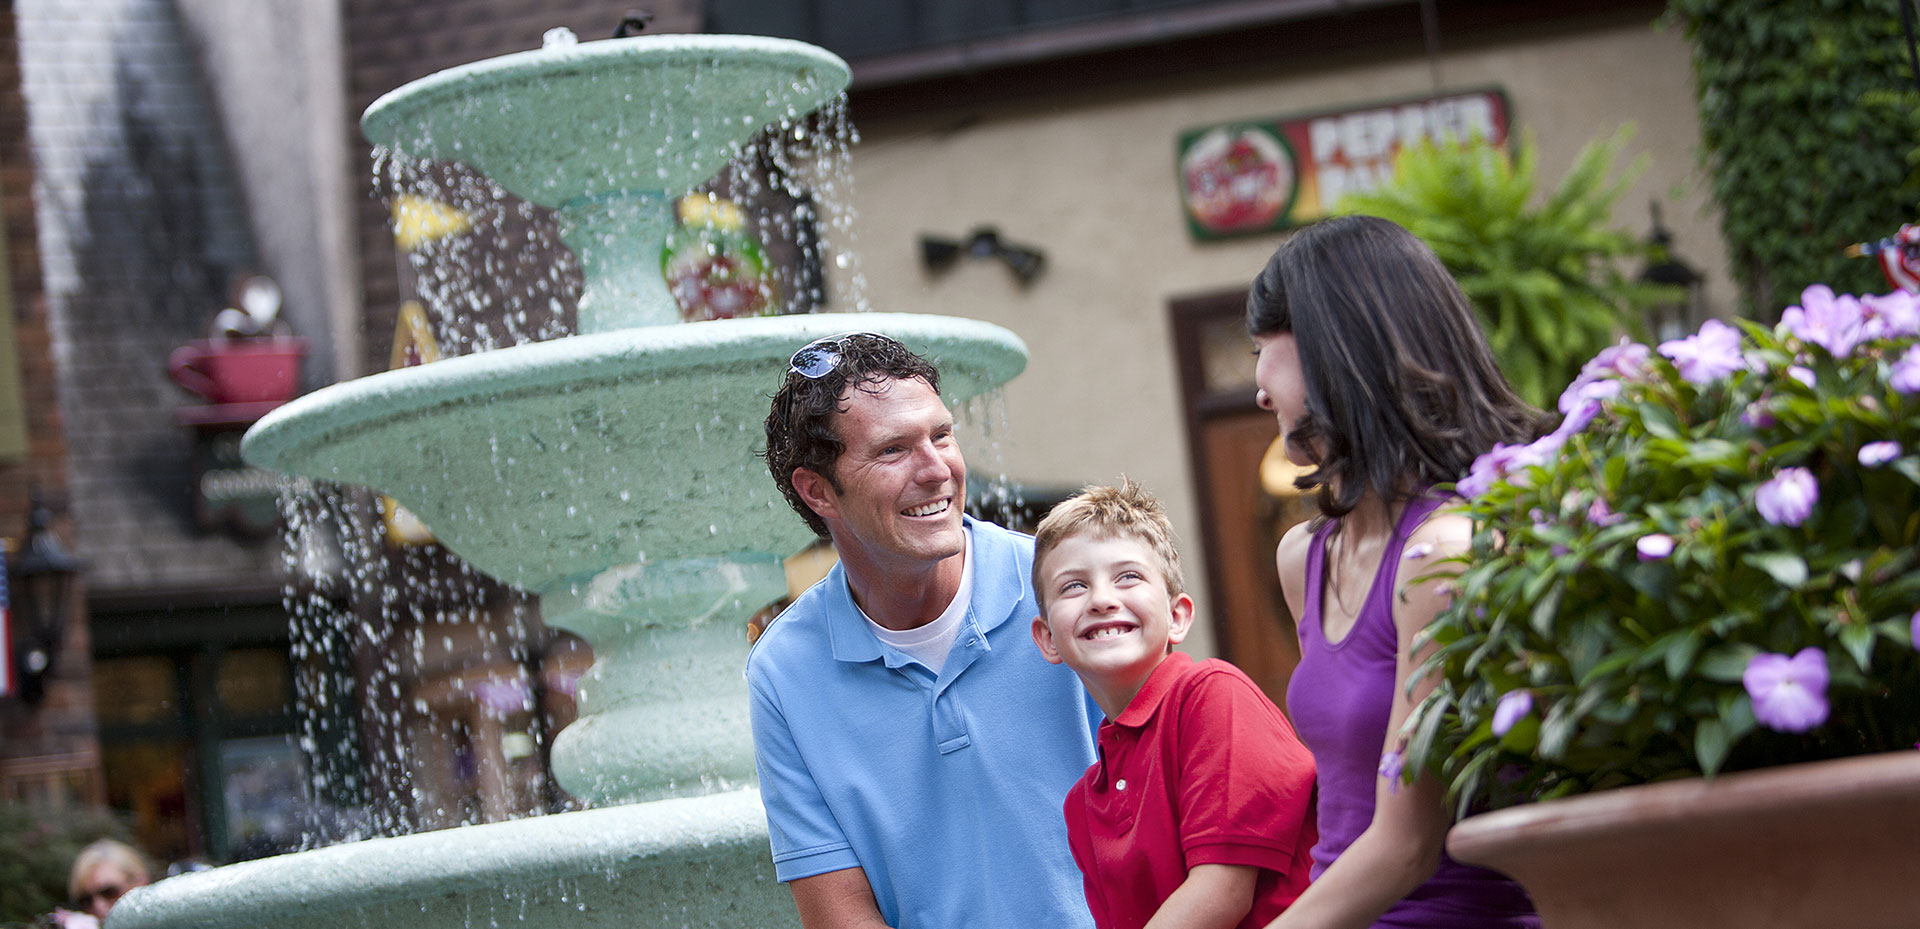 A Family near the Village Fountain | Gatlinburg Attractions | Things To Do In Gatlinburg, TN